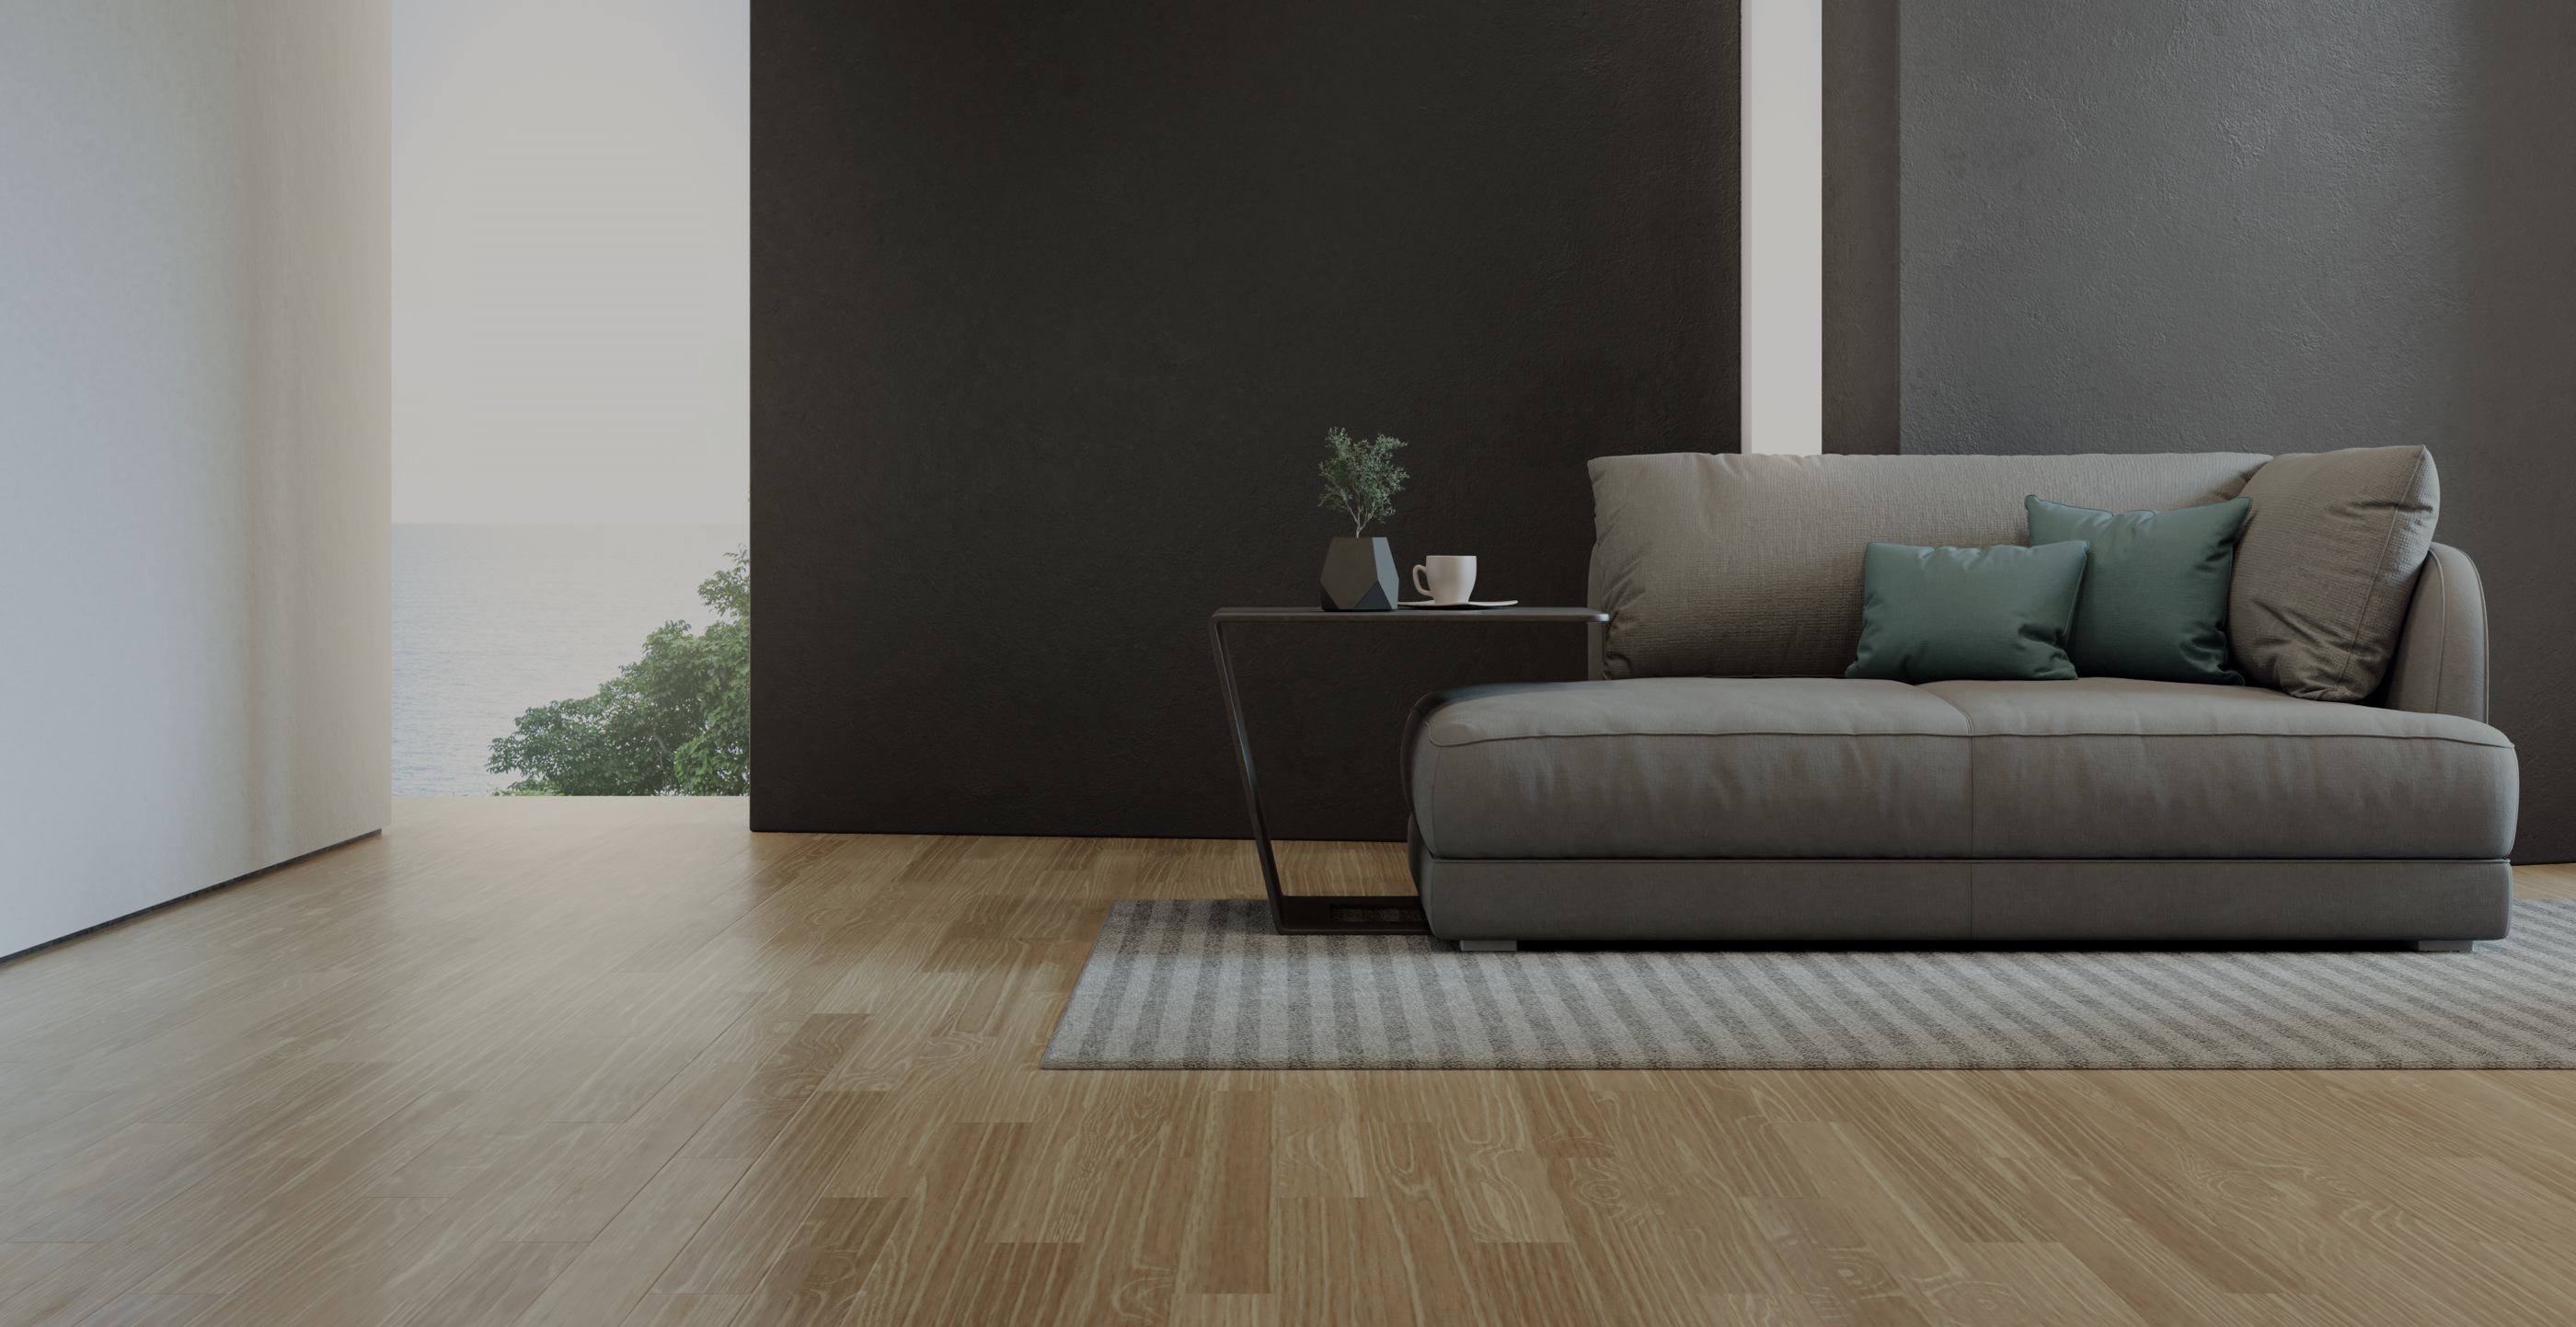 Transform your space with a floor you'll love, expertly installed